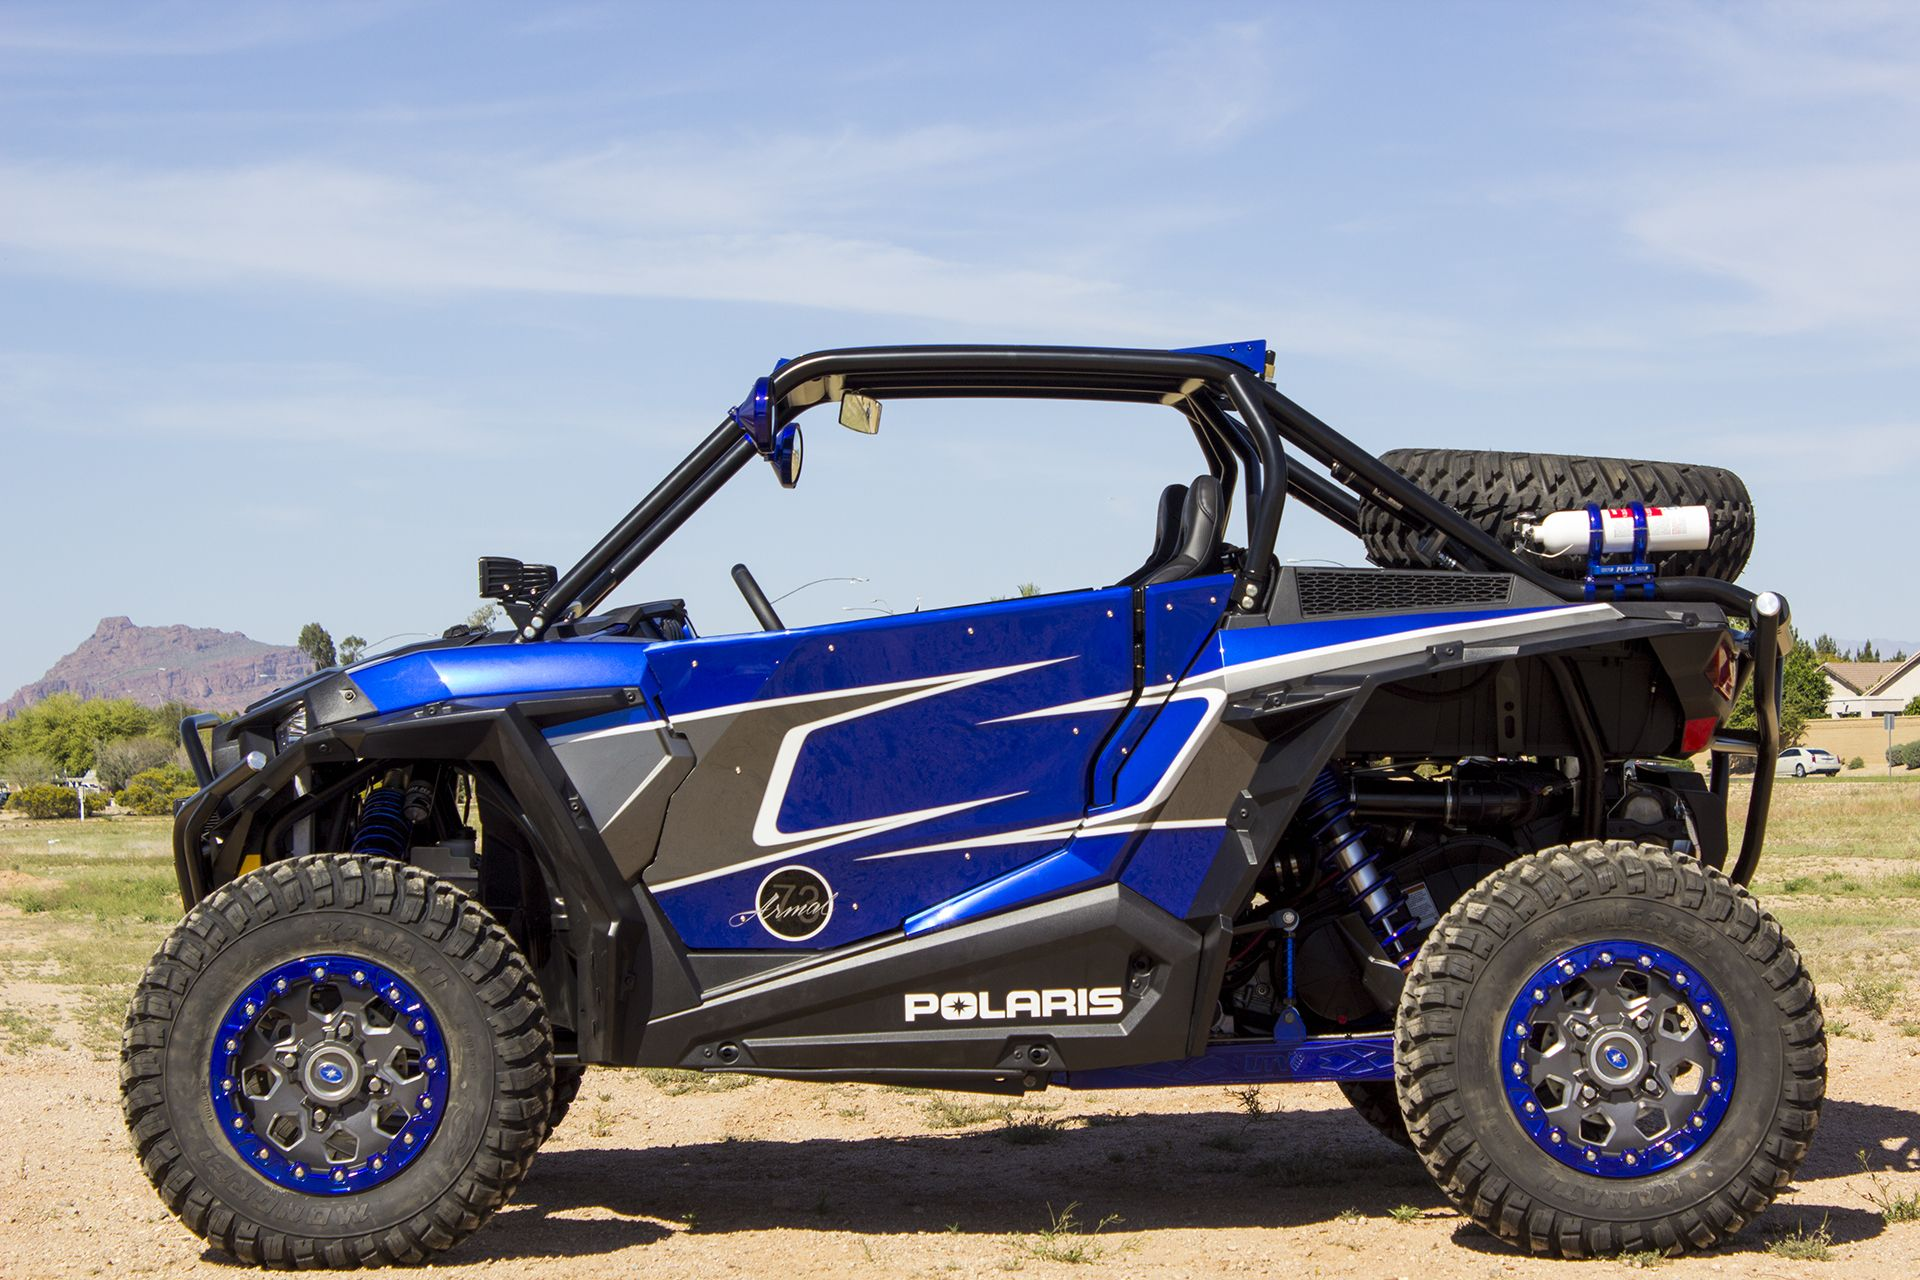 Permalink to Lifted Polaris Rzr 2015 Pictures